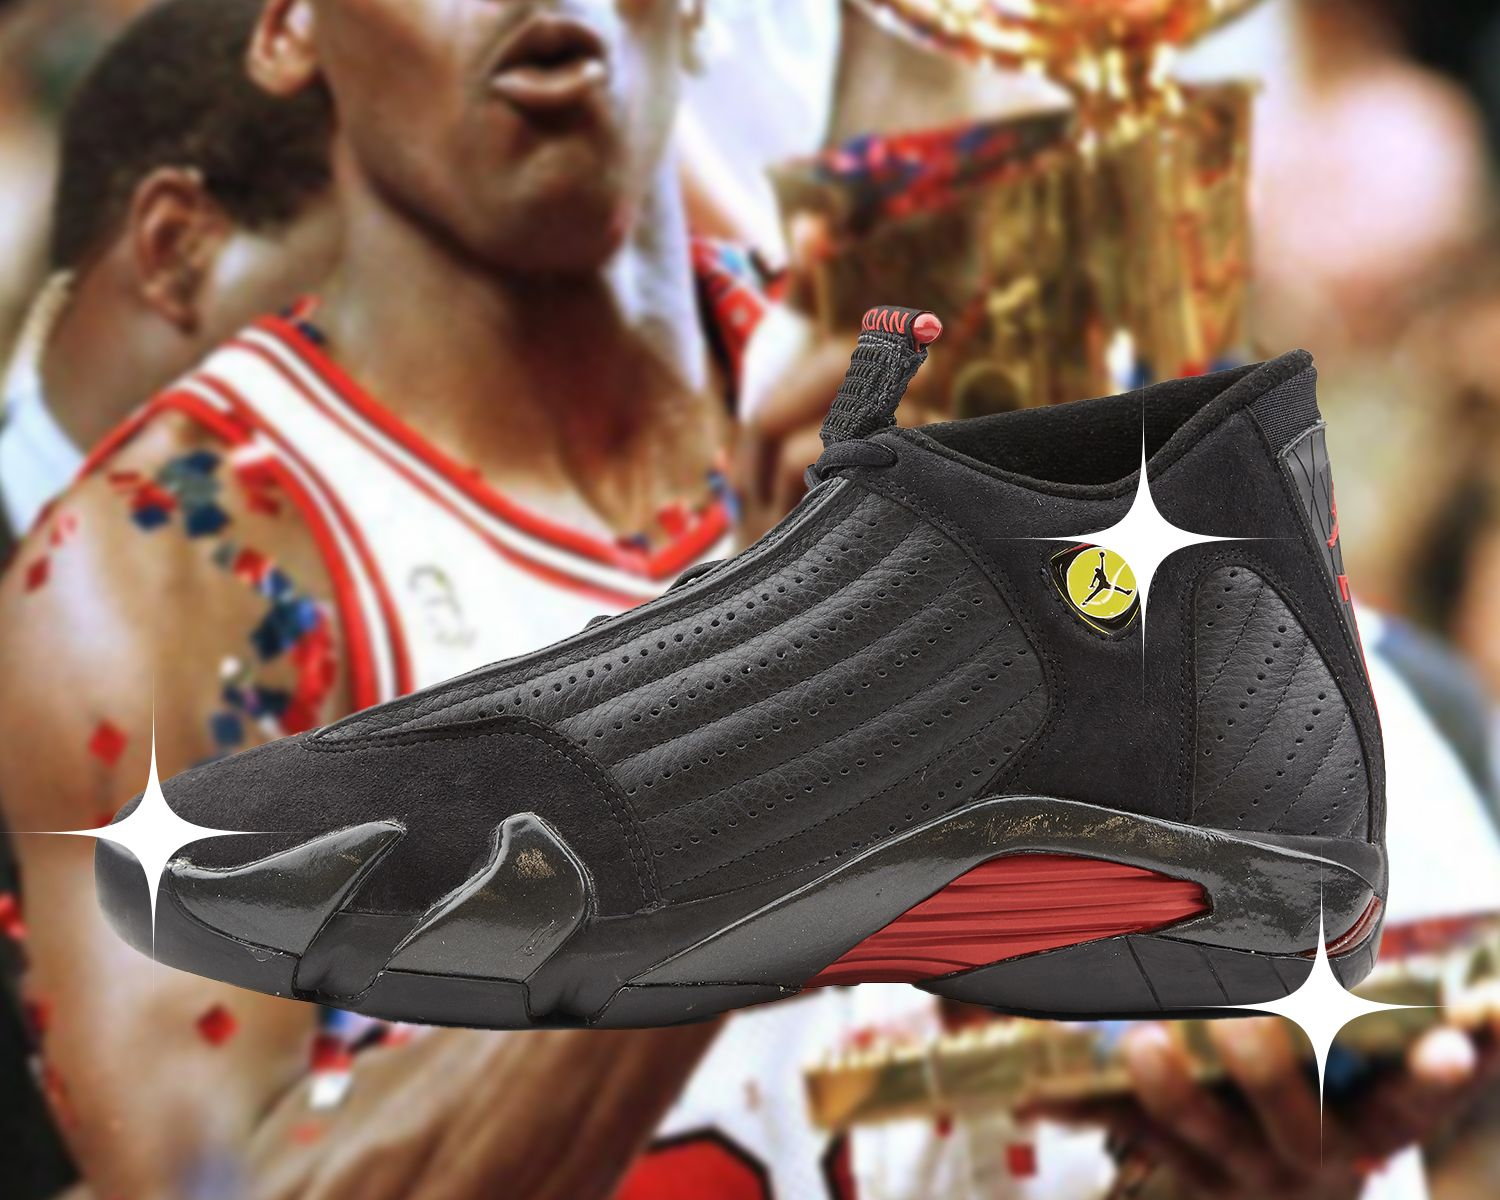 The 6 Sneakers Michael Jordan Wore When He Became a Champion 21